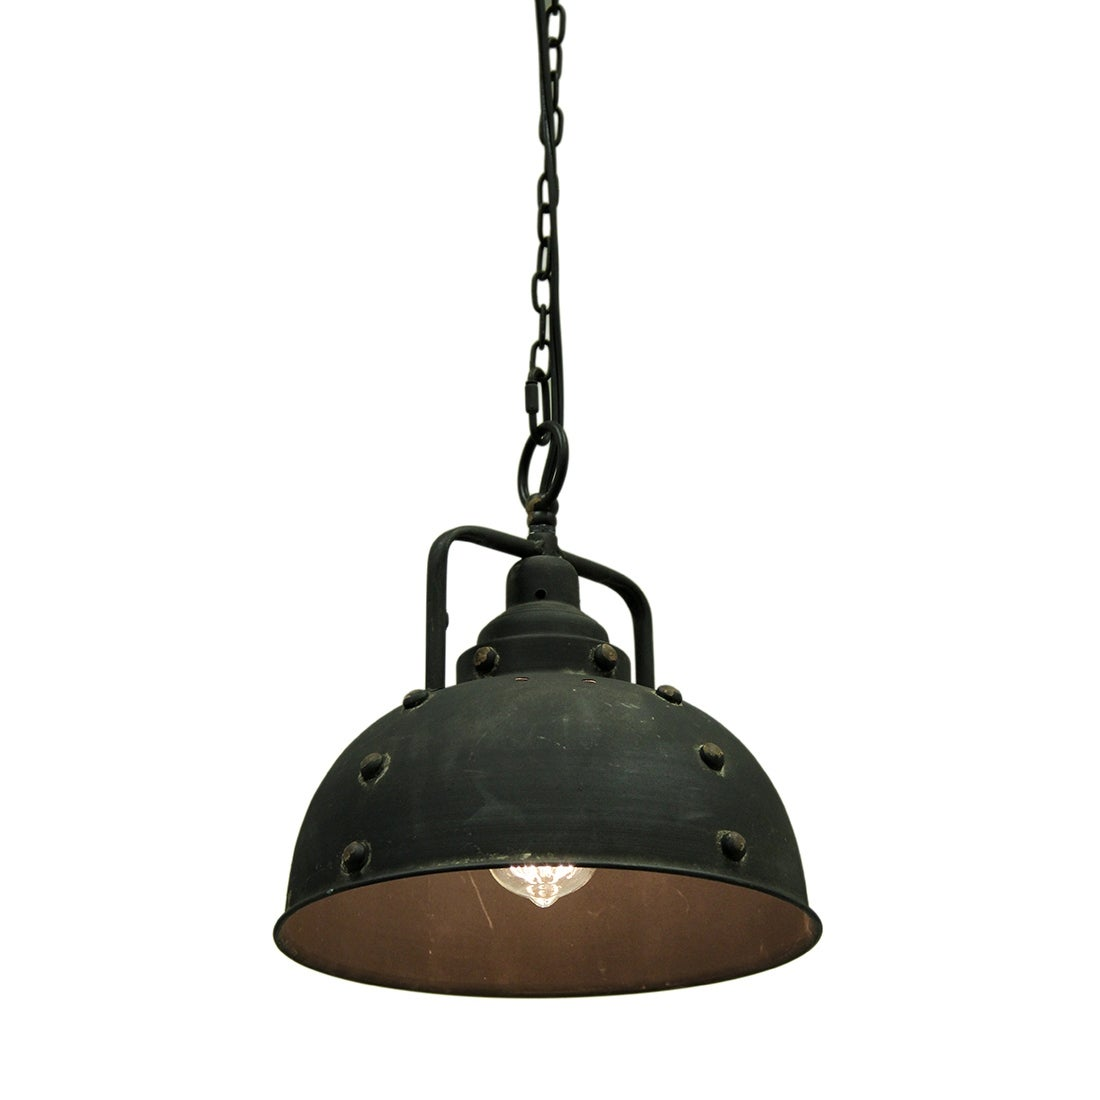 Shop Black Friday Deals On 84 Inch Chain Industrial Pendant Light Rustic Metal Farmhouse Hanging Wired Fixture Antique Lamp 11 5 X 11 X 11 Inches On Sale Overstock 16751579